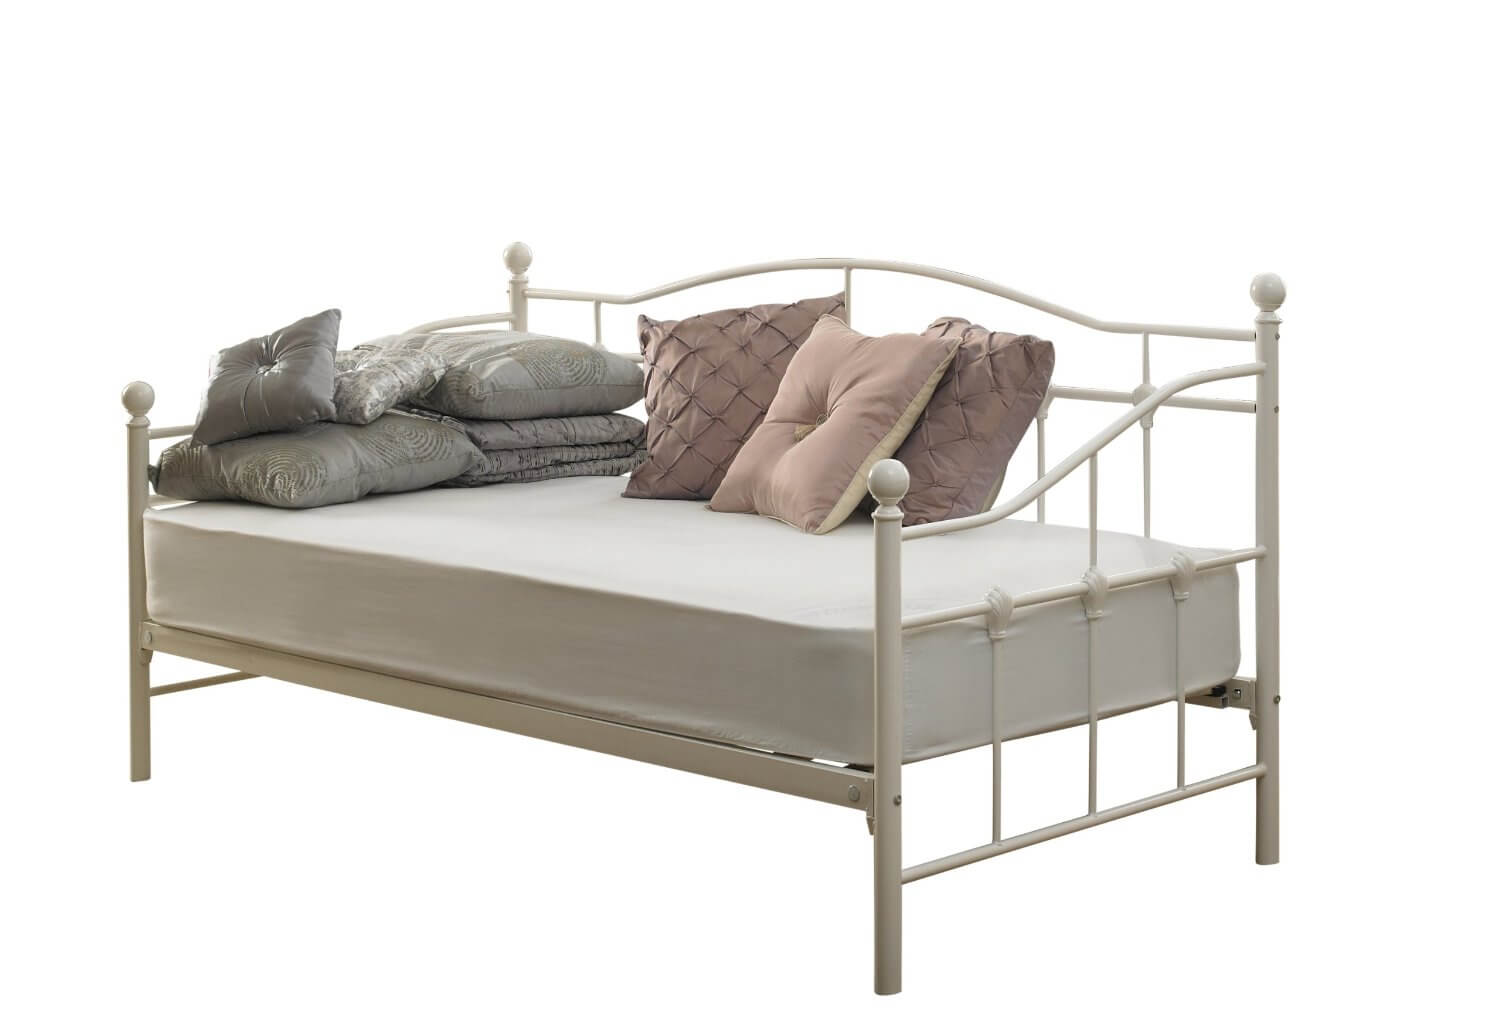 The Complete Buyers Guide To Bed Frames Bed Buys Uk